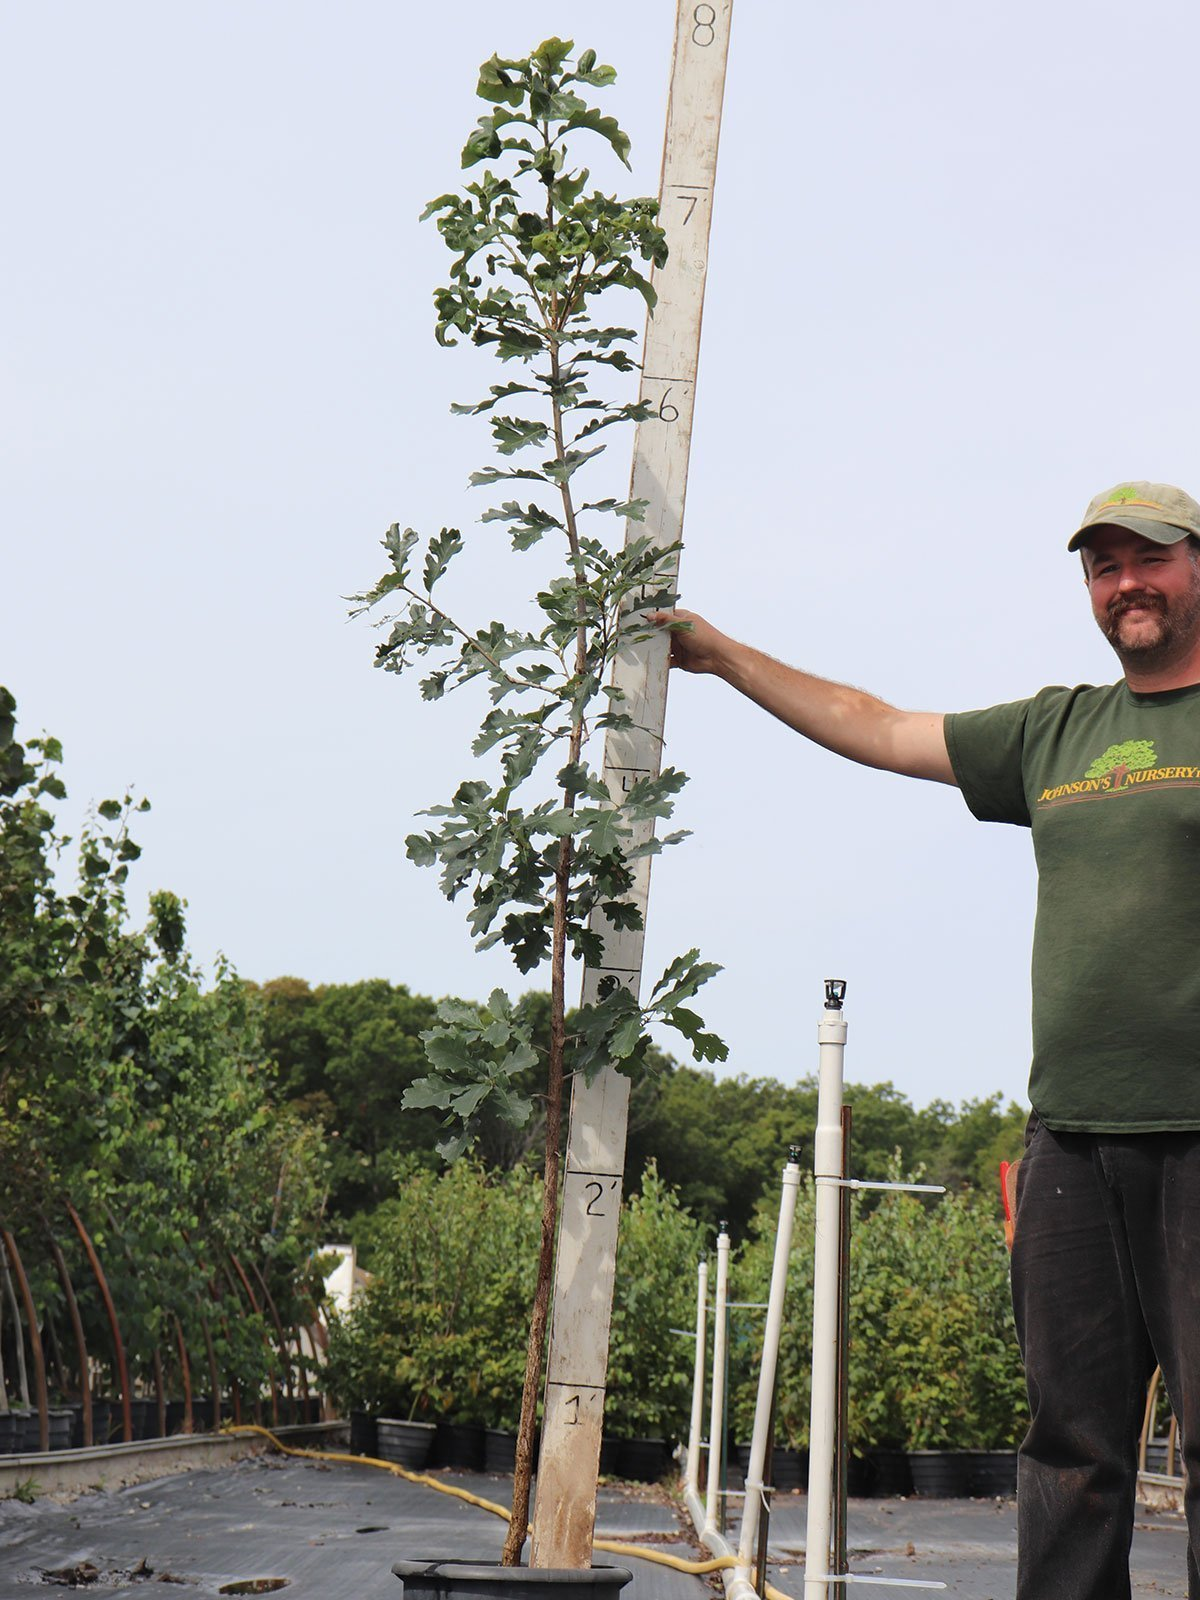 better success transplanting oaks growing in #5 container rootmaker pots at johnson's nursery